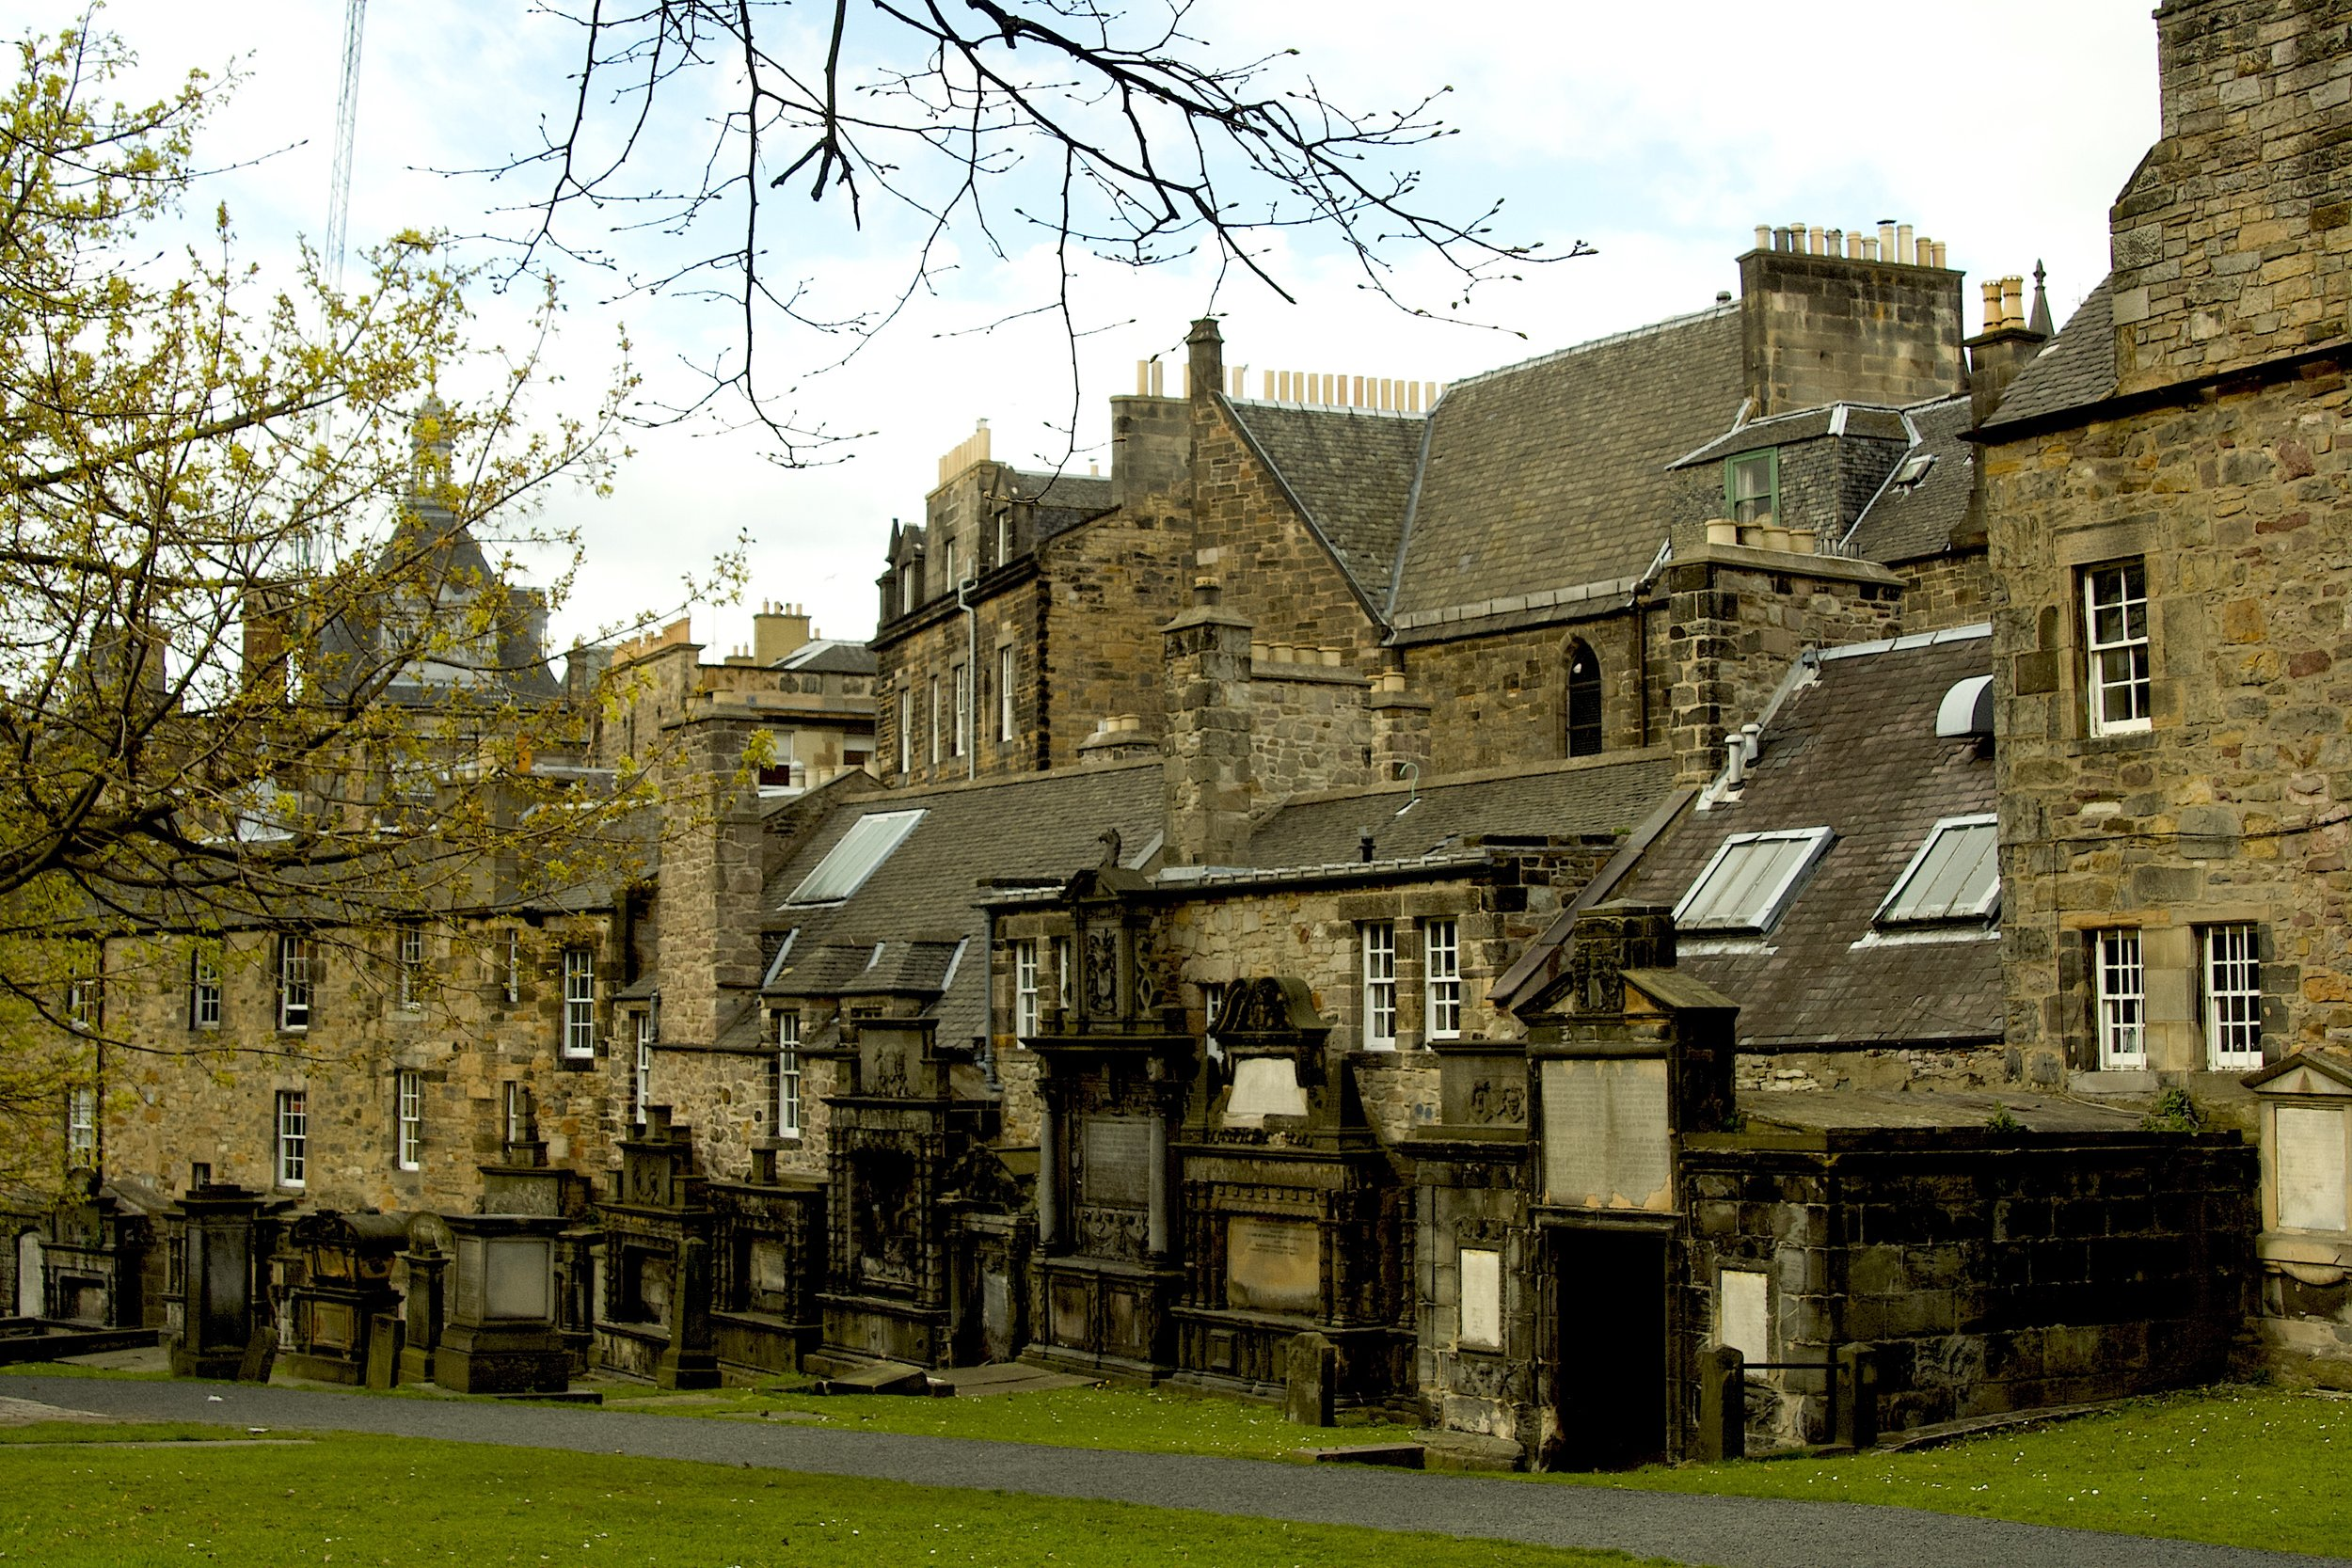 Imagine living in one of these cold stone Edinburgh houses butting up against ghoulish Greyfriars tombs and mausoleums!